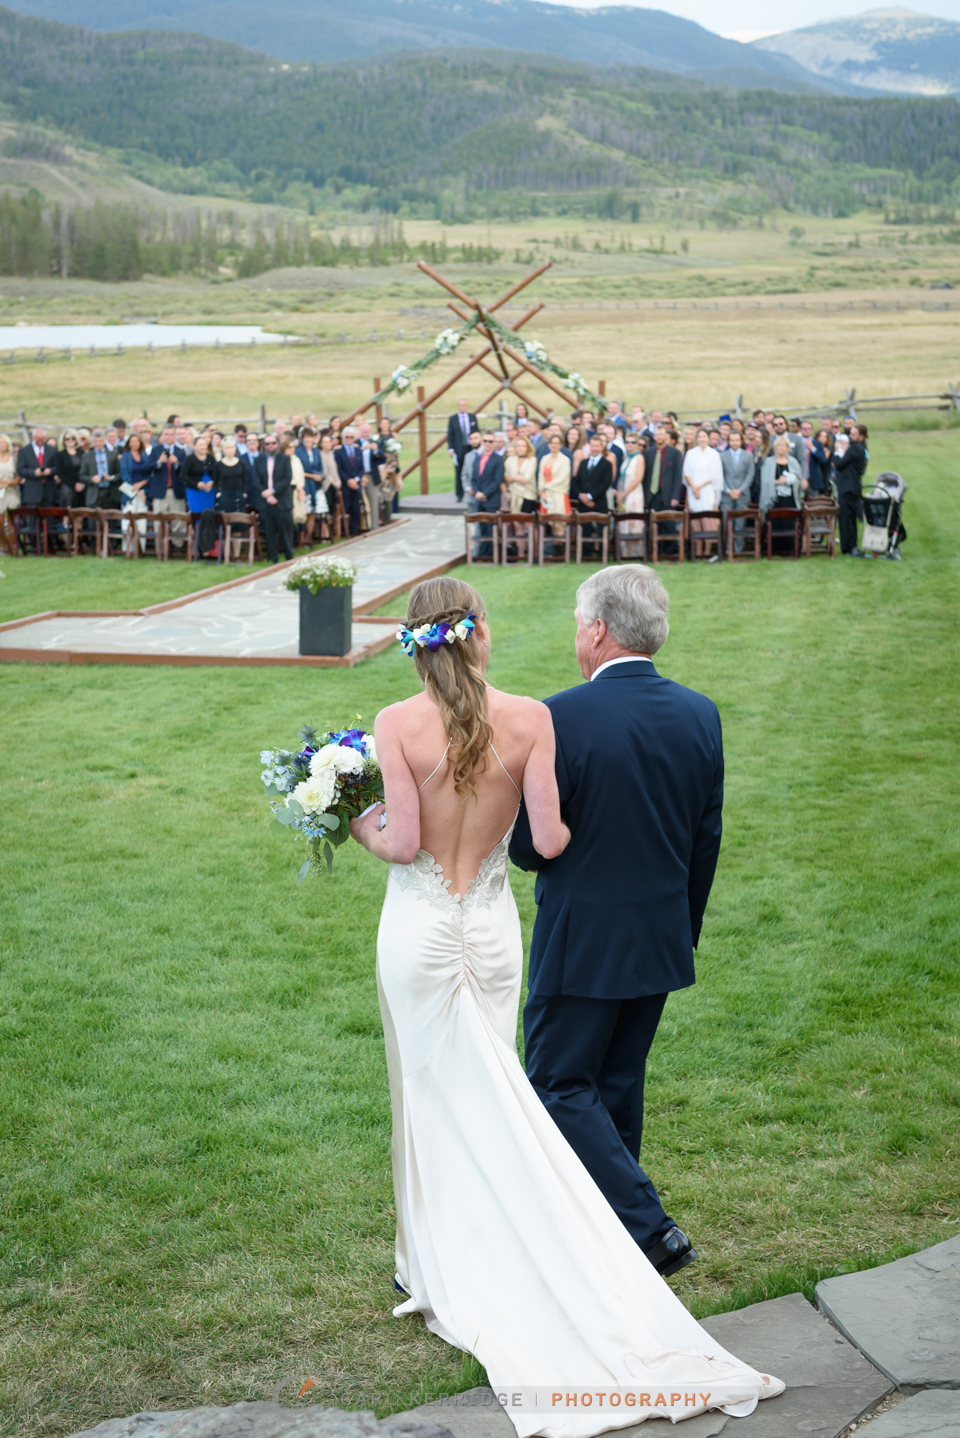 carl-kerridge-photography-wedding-devils-thumb-ranch-colorado-26